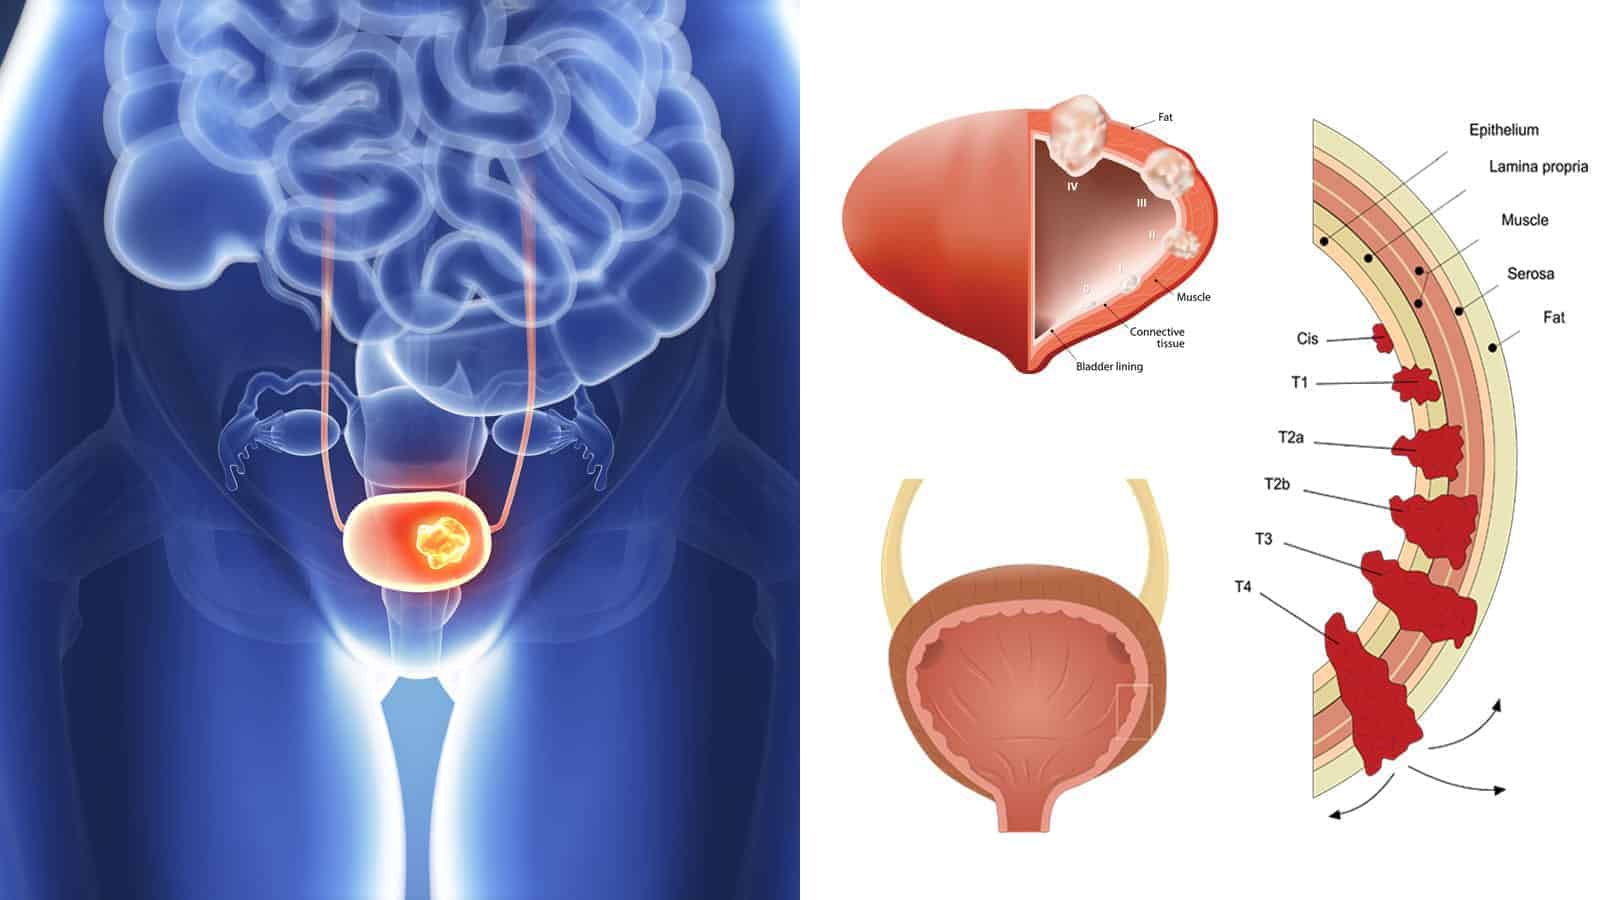 does bladder cancer cause weight loss